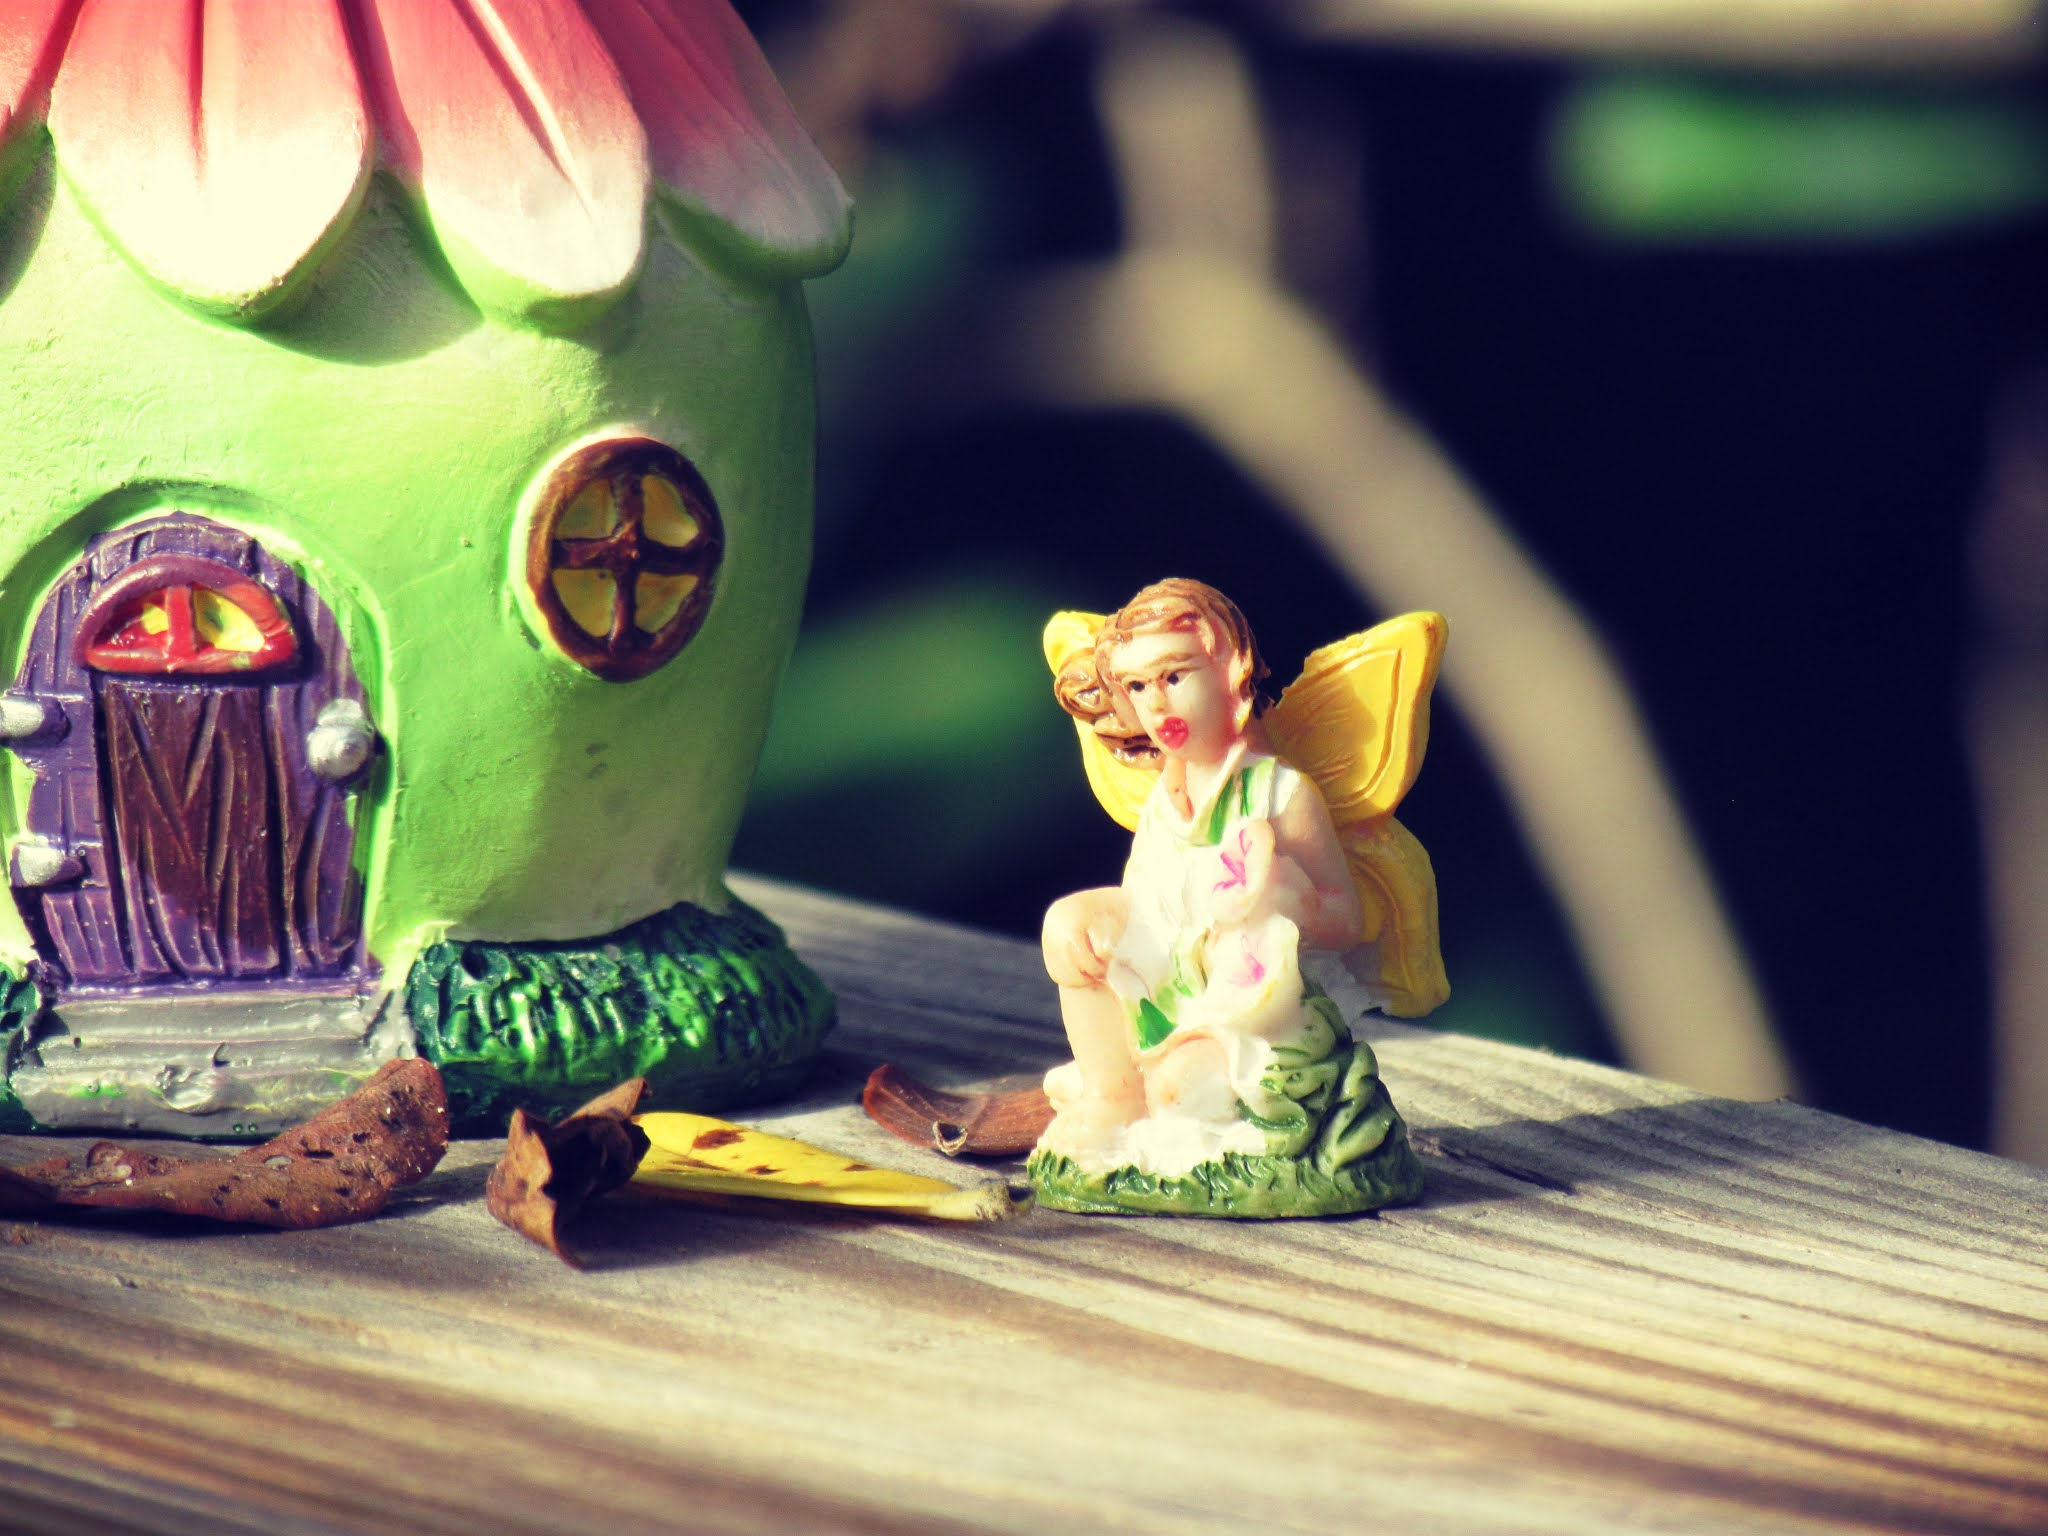 Fairy dollhouse in minty green with pink roofing and a fairy figurine sitting in mother earth